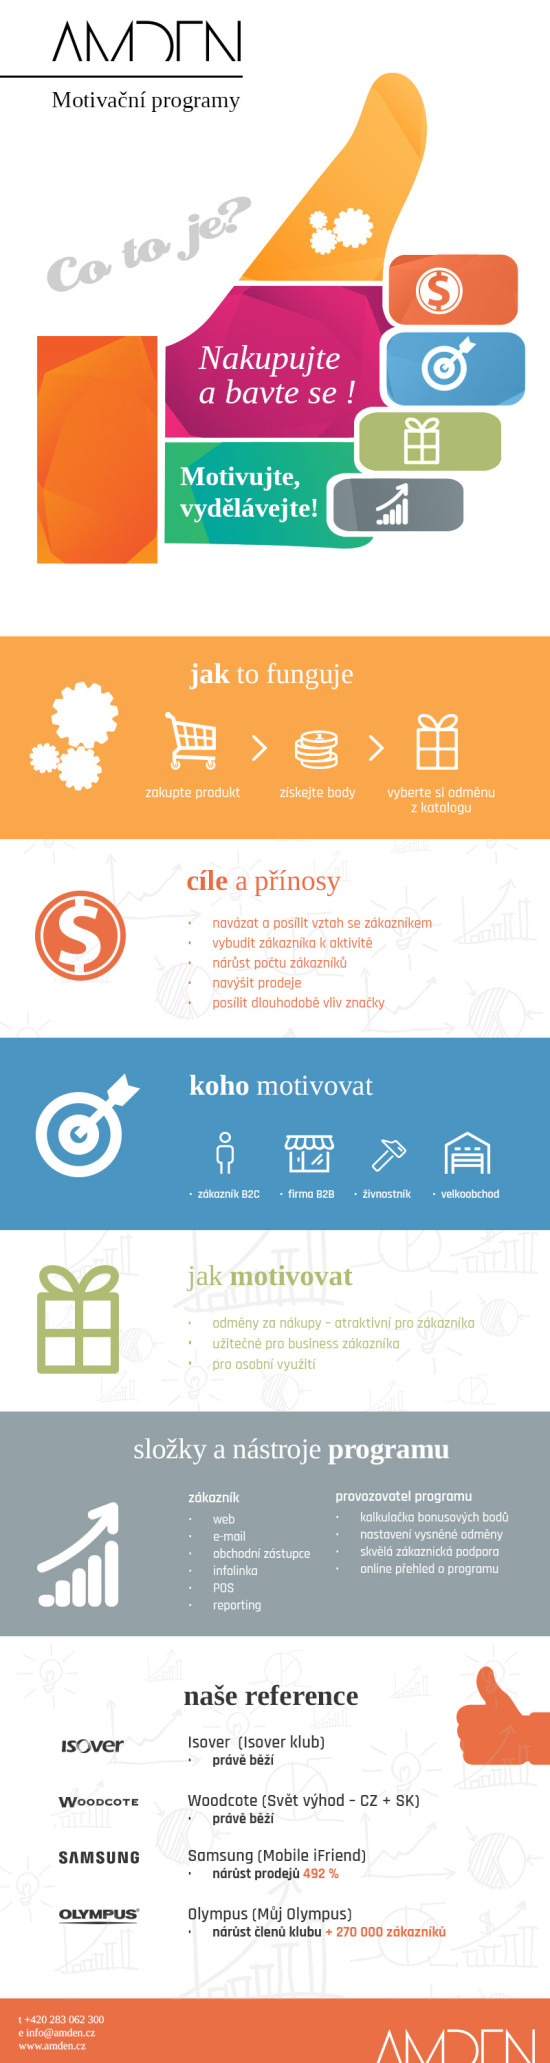 Amden_vernostni_program_infographics